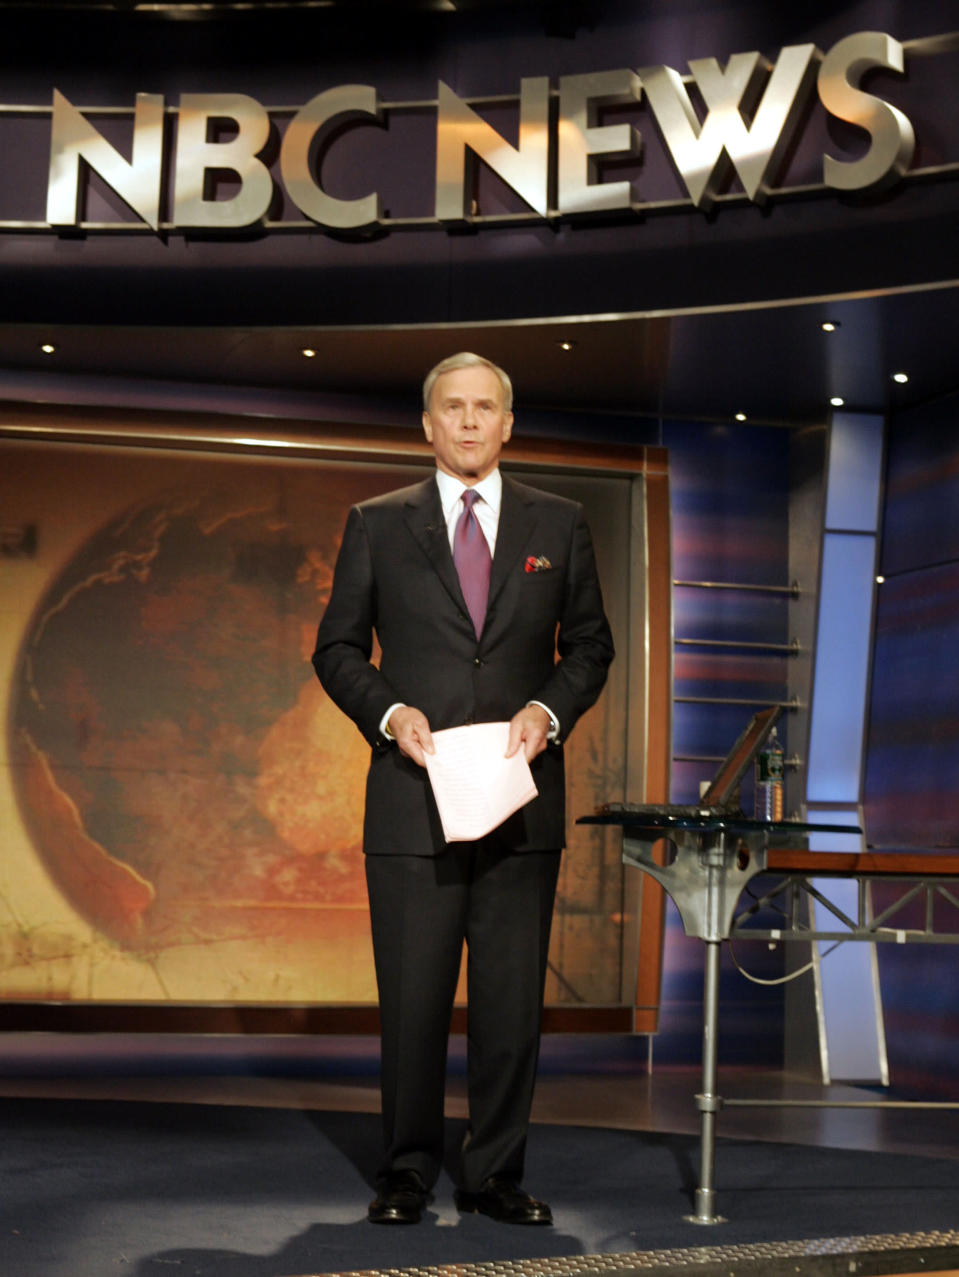 "FILE - ""NBC Nightly News"" anchor Tom Brokaw delivers his final broadcast, in New York Wednesday Dec. 1, 2004. Brokaw says he is retiring from NBC News after working at the network for 55 years. The author of ""The Greatest Generation"" is now 80 years old and his television appearances have been limited in recent years as he fought cancer. He says he will continue writing books and articles. (AP Photo/Richard Drew, File)"